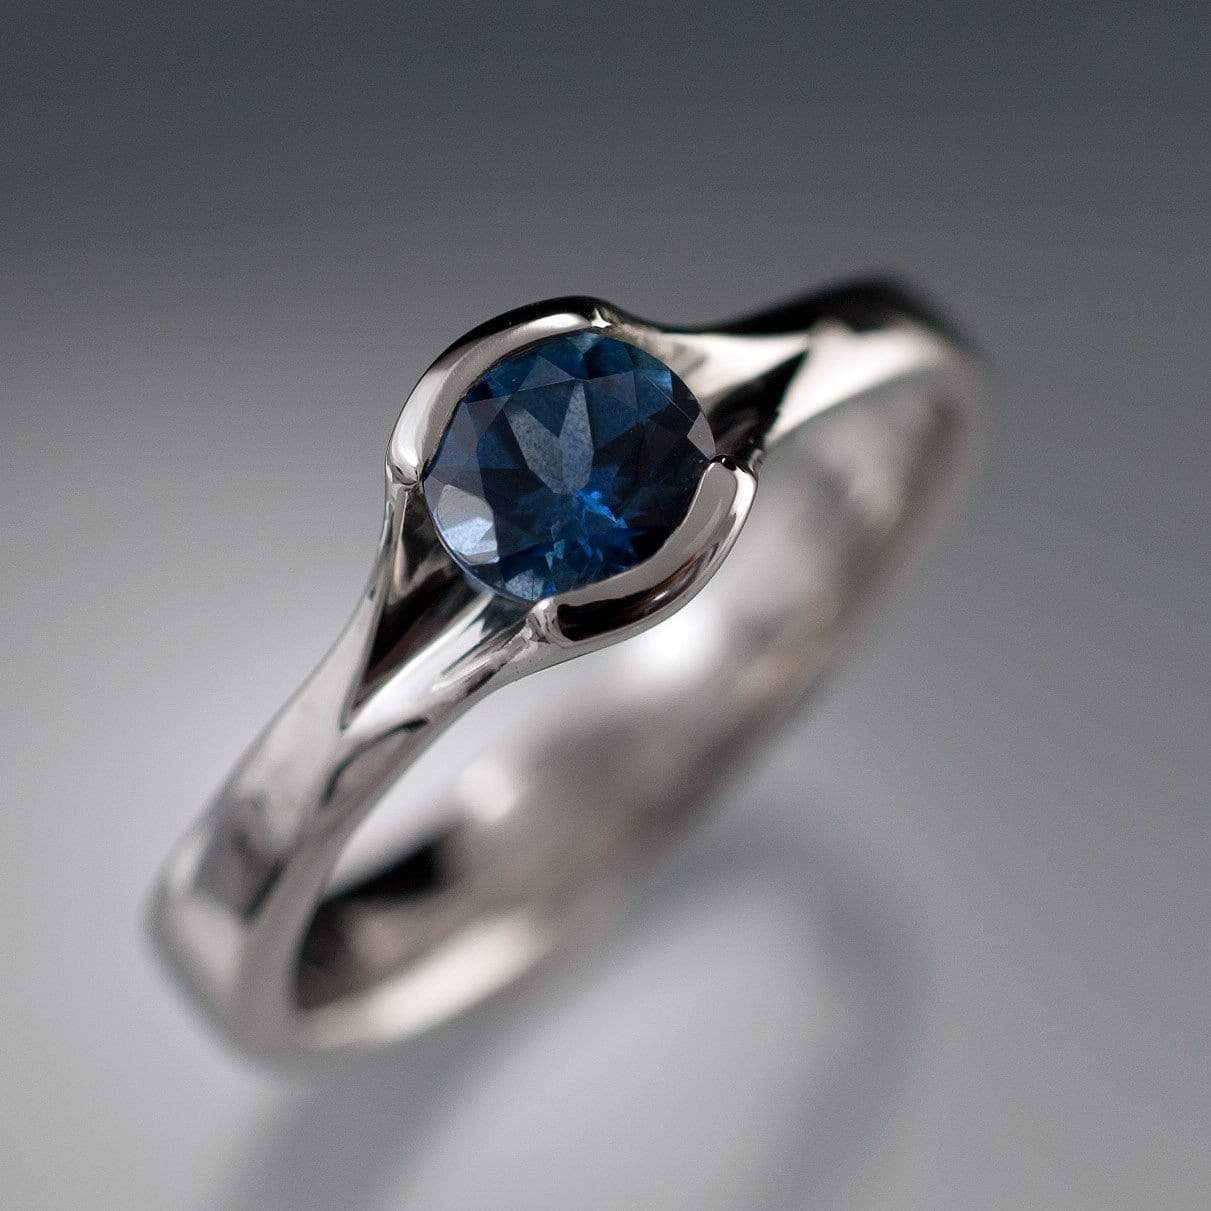 Round Fair Trade Teal/Blue Sapphire Fold Solitaire Engagement Ring